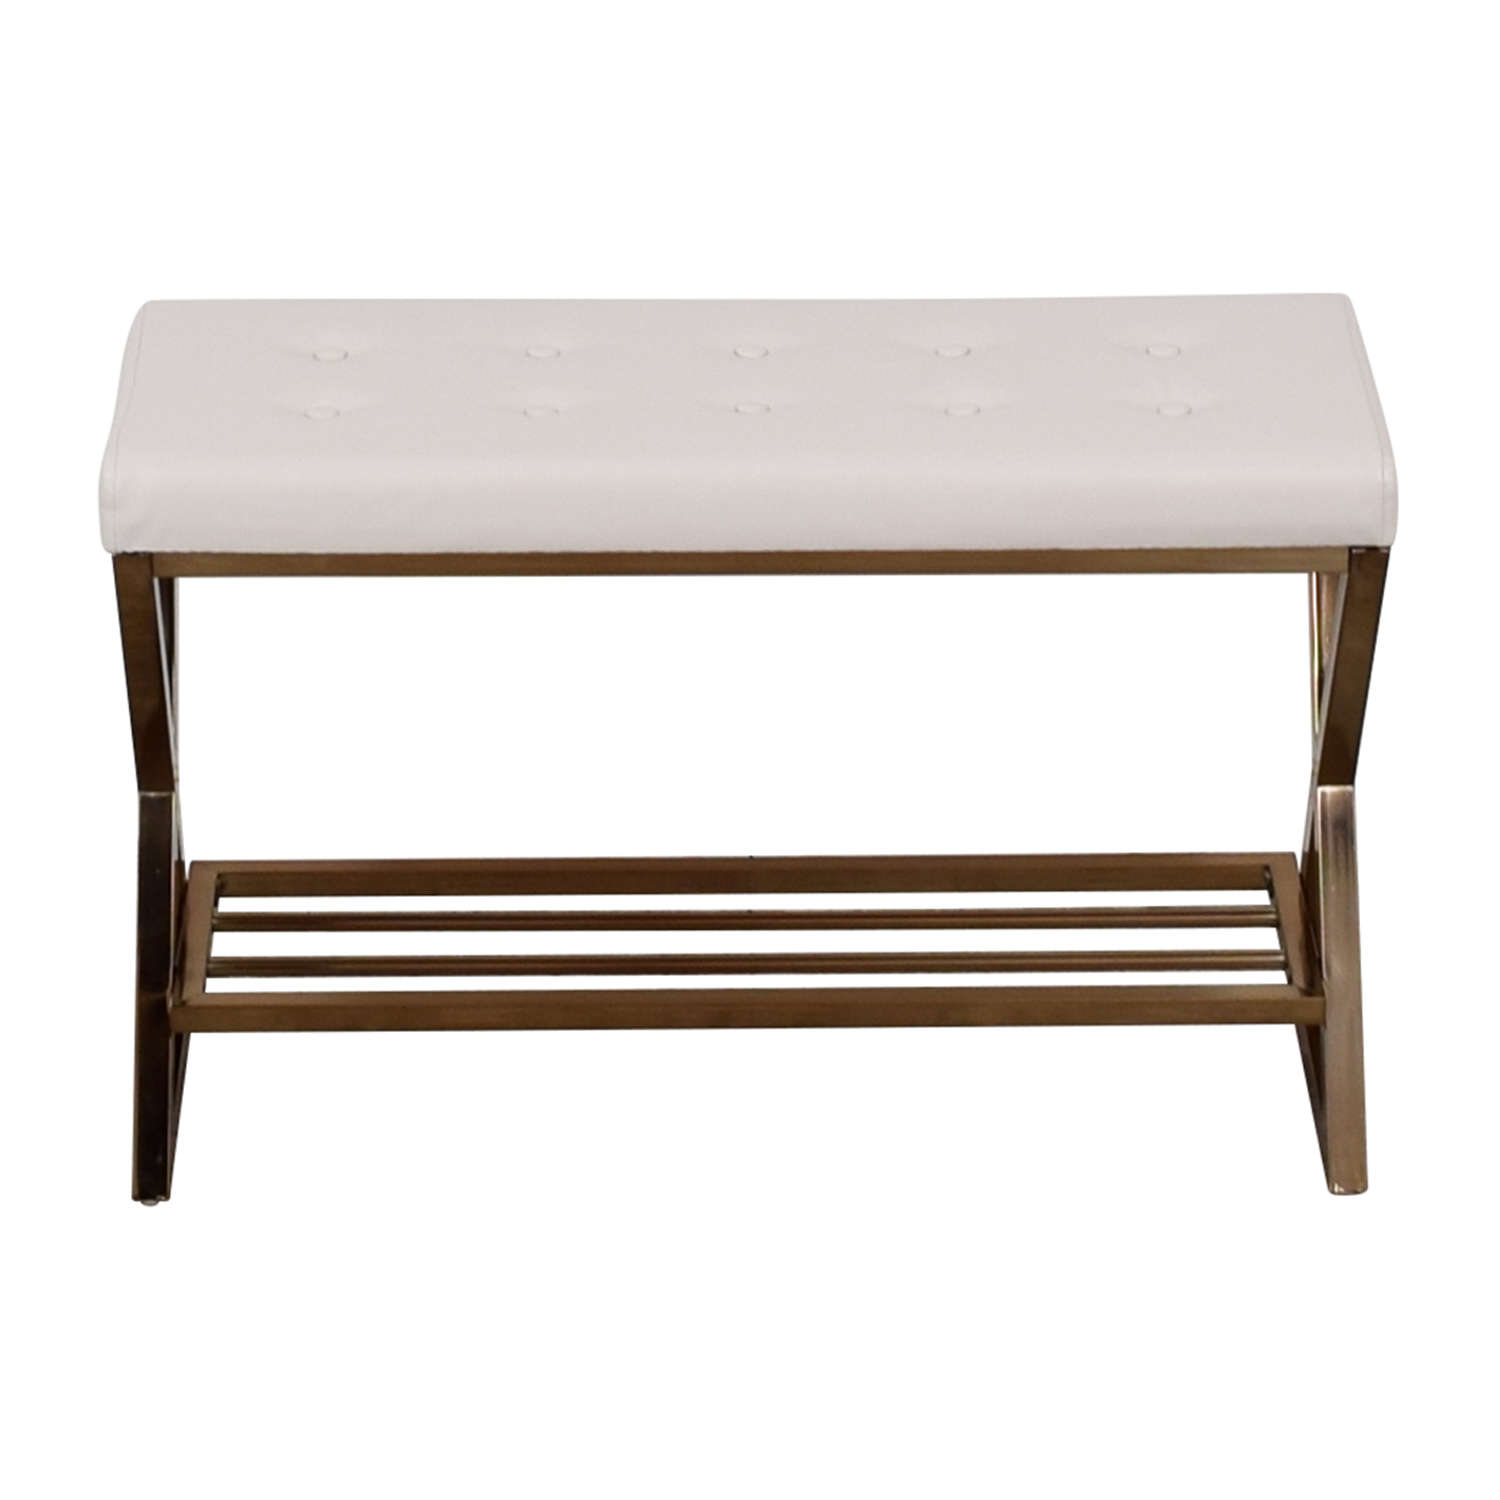 shop Furniture of America White Tufted Bench Furniture of America